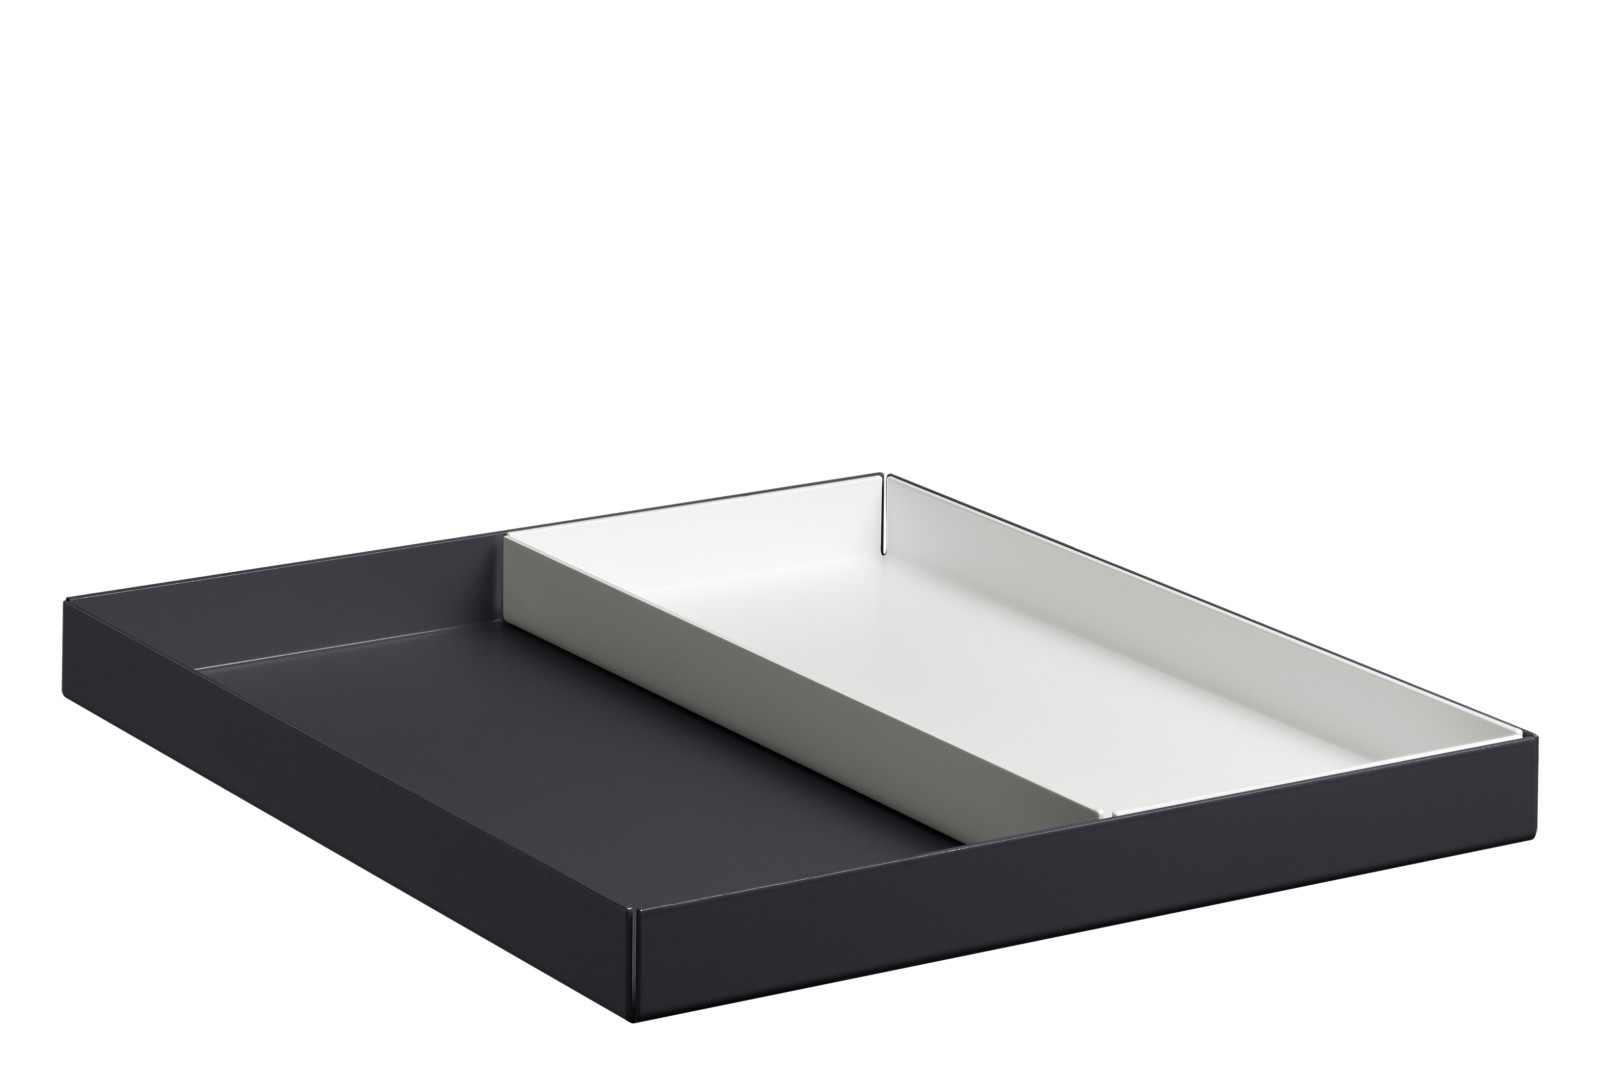 CM04 Ito Rectangular Tray Stainless Steel